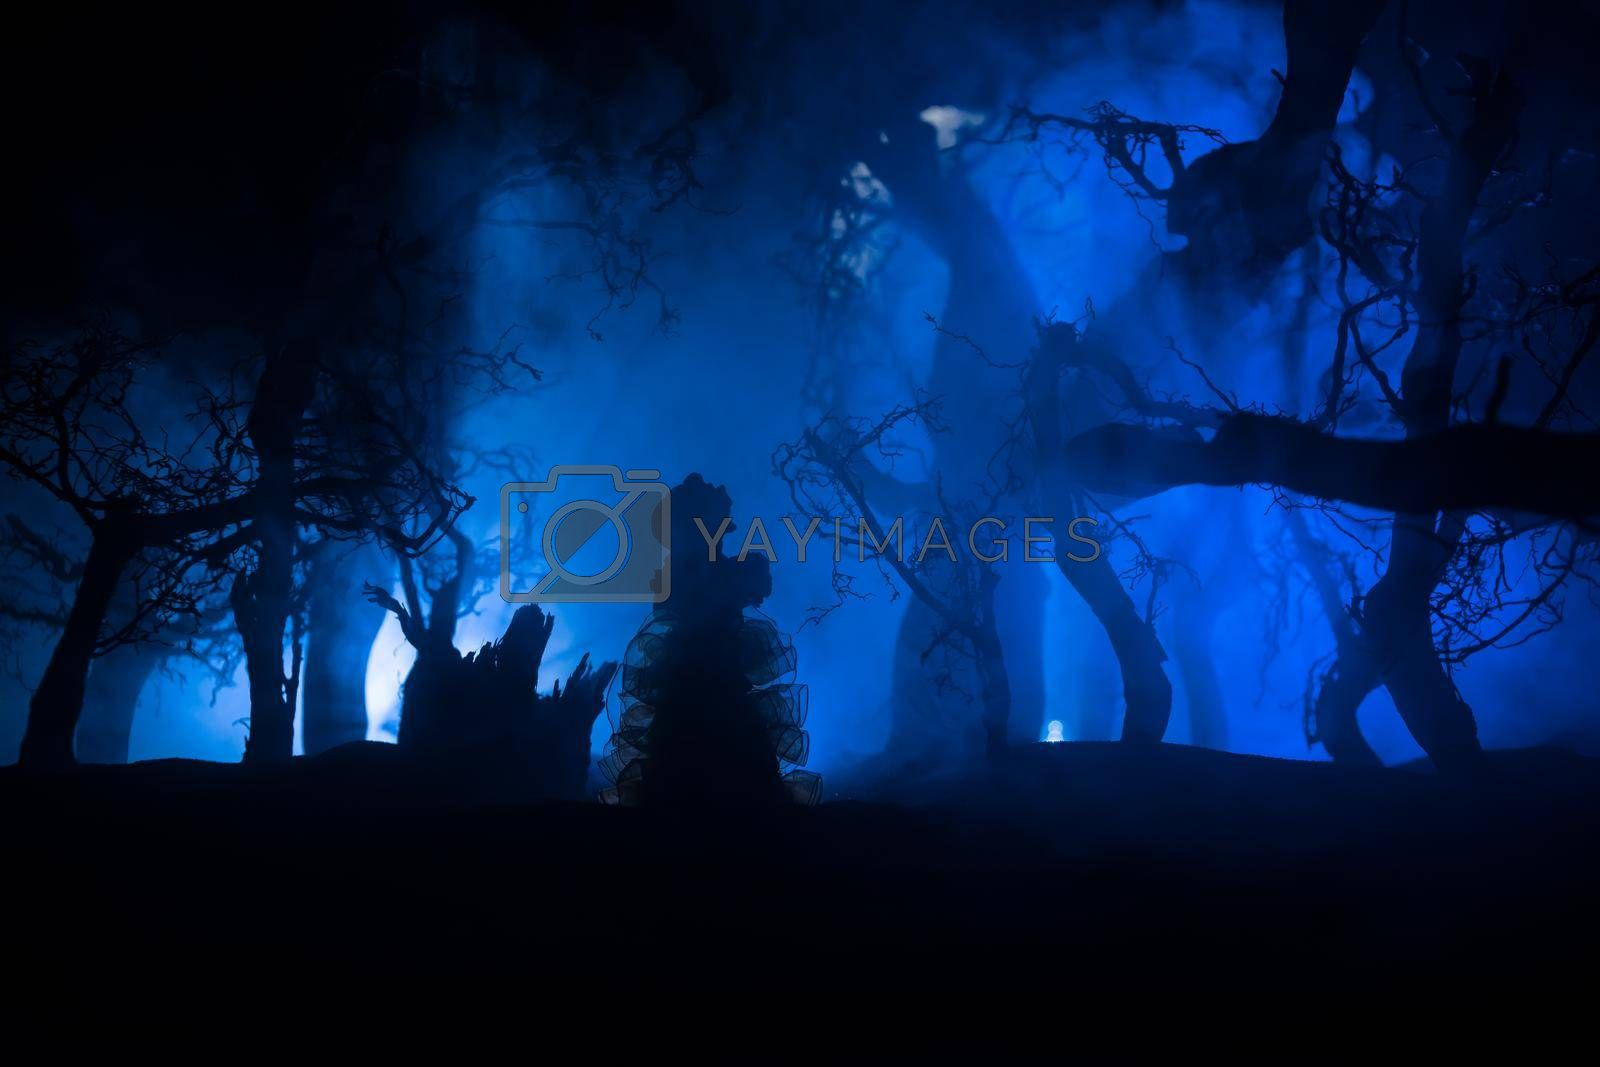 Alone girl in the dead forest at misty night. Silhouette of girl standing between trees under moonlight. Horror Halloween concept. Selective focus.